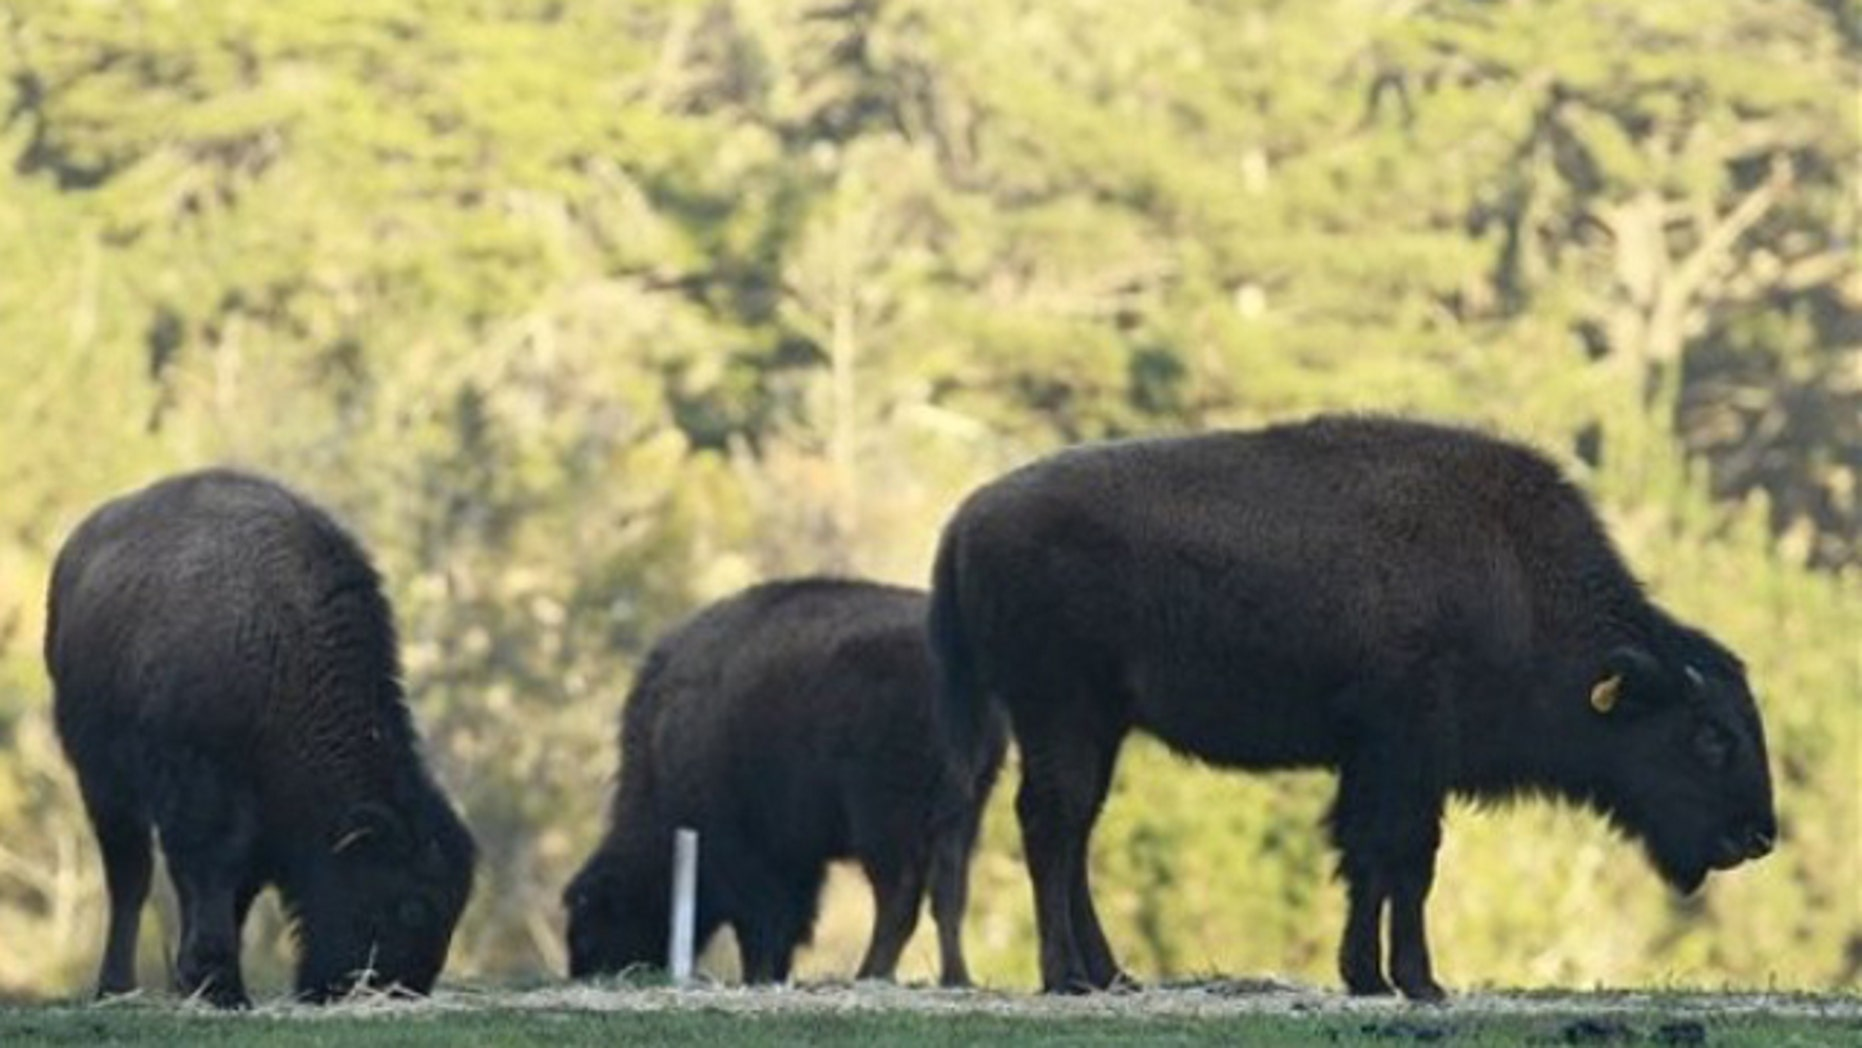 Young bison are shown at the Golden Gate Park Buffalo Paddock in San Francisco, Thursday, Jan. 5, 2012. San Francisco officials are blaming an off-leash dog for the death of a baby bison found injured in its enclosure at Golden Gate Park. The San Francisco parks department says the bison was found with a laceration on its side and three broken ribs Wednesday morning. (AP Photo/Jeff Chiu)